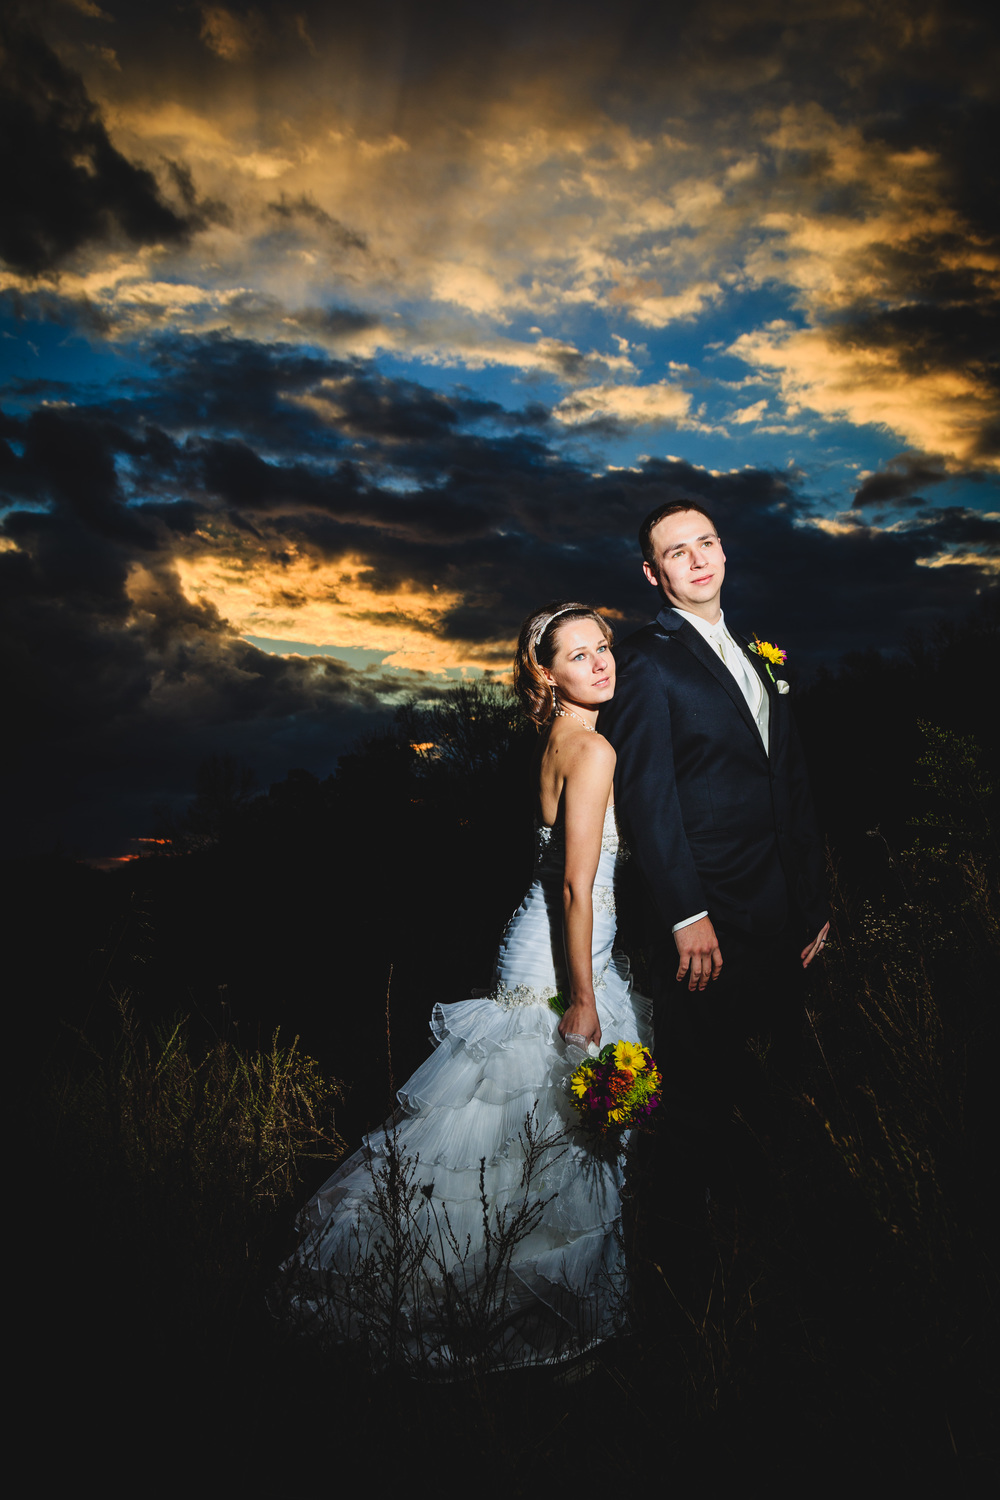 professional-wedding-photography-gatlinburg.jpg